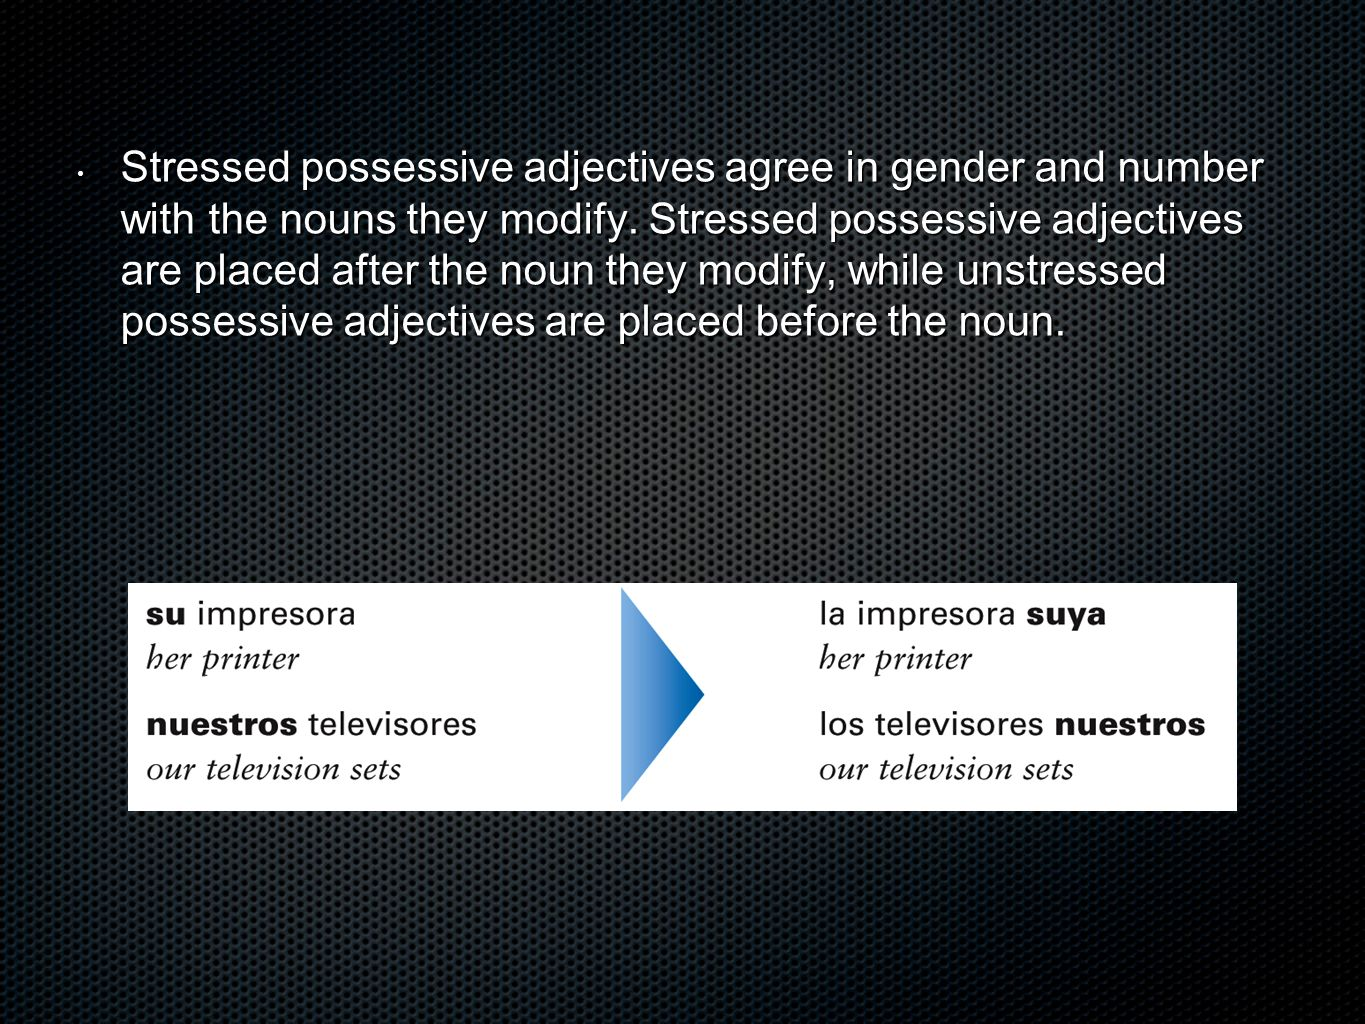 Stressed possessive adjectives agree in gender and number with the nouns they modify.